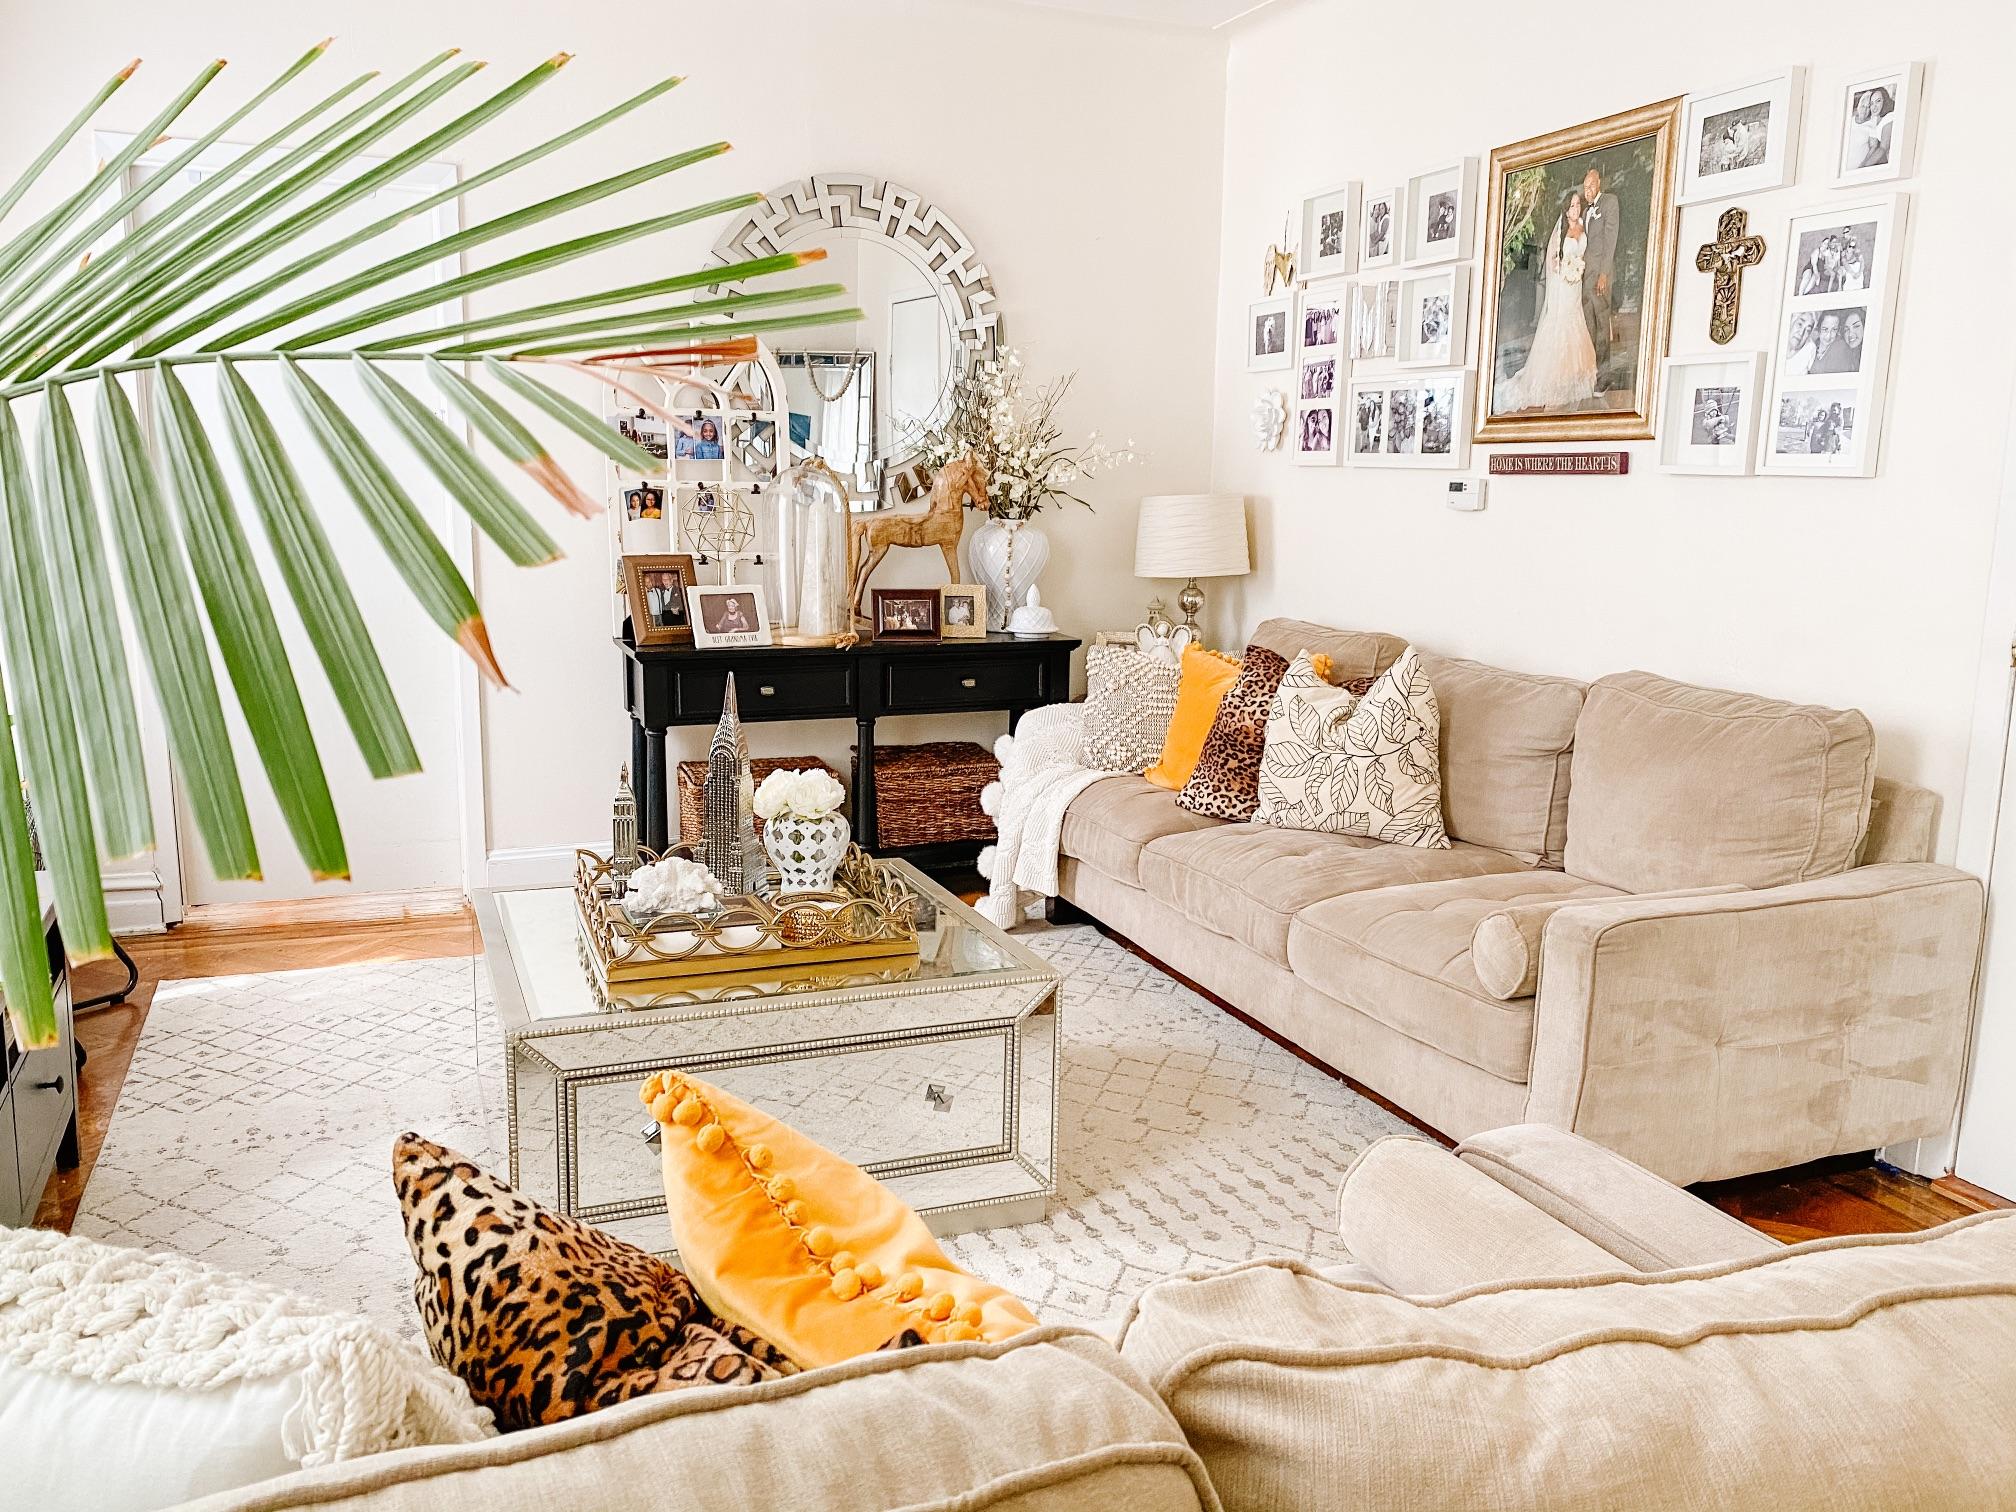 Easy Hacks for Apartment Renters